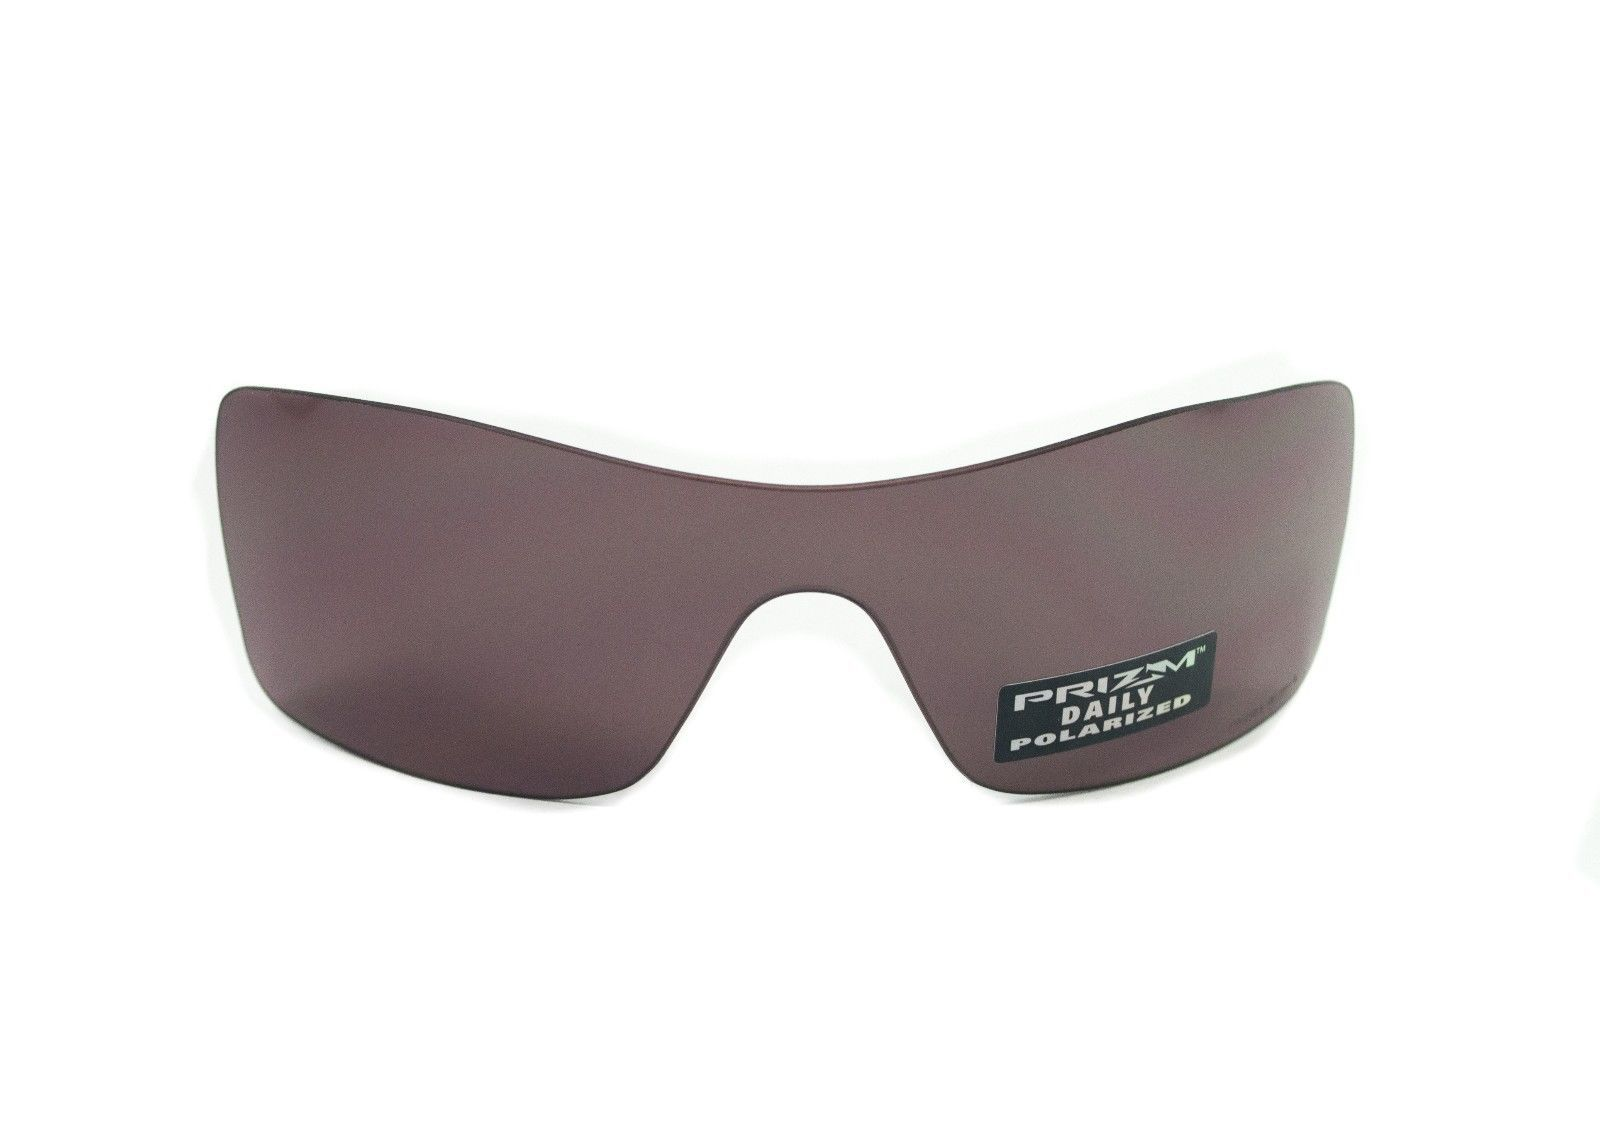 Sunglass Lens Replacements 179194: Oakley Batwolf Prizm Daily ...